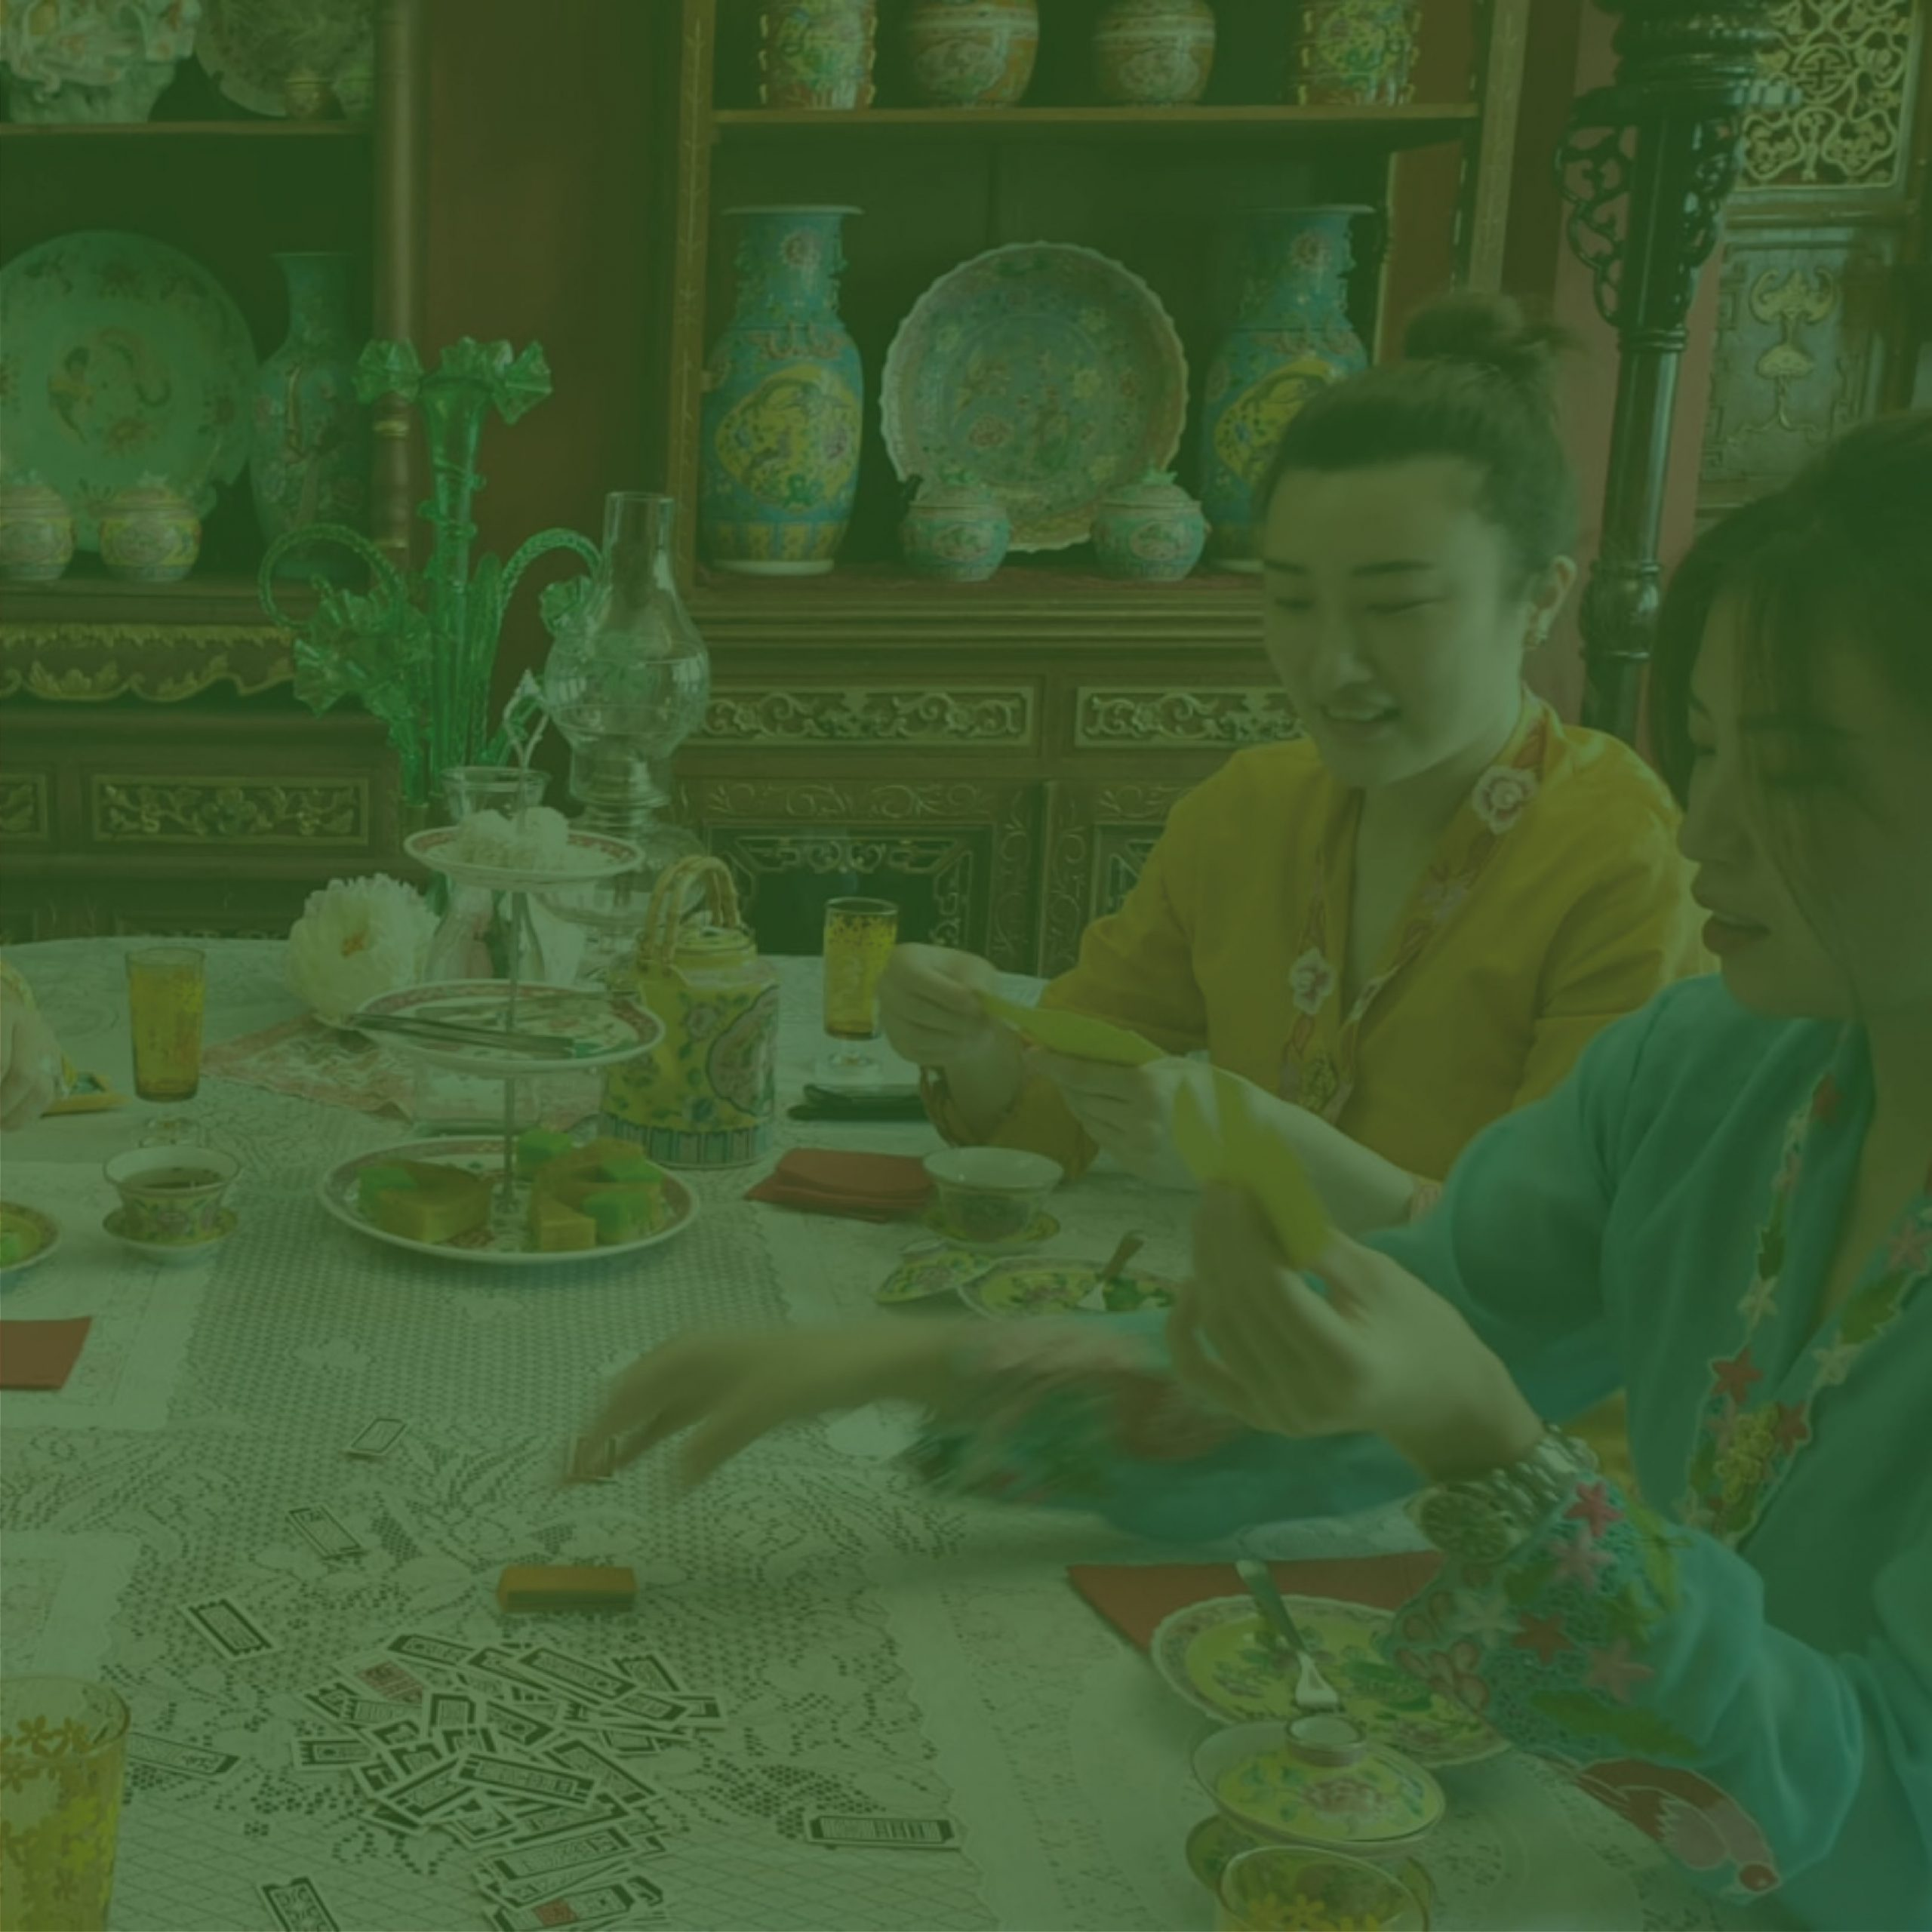 Peranakan Discoveries : The Lost Game of Cherki